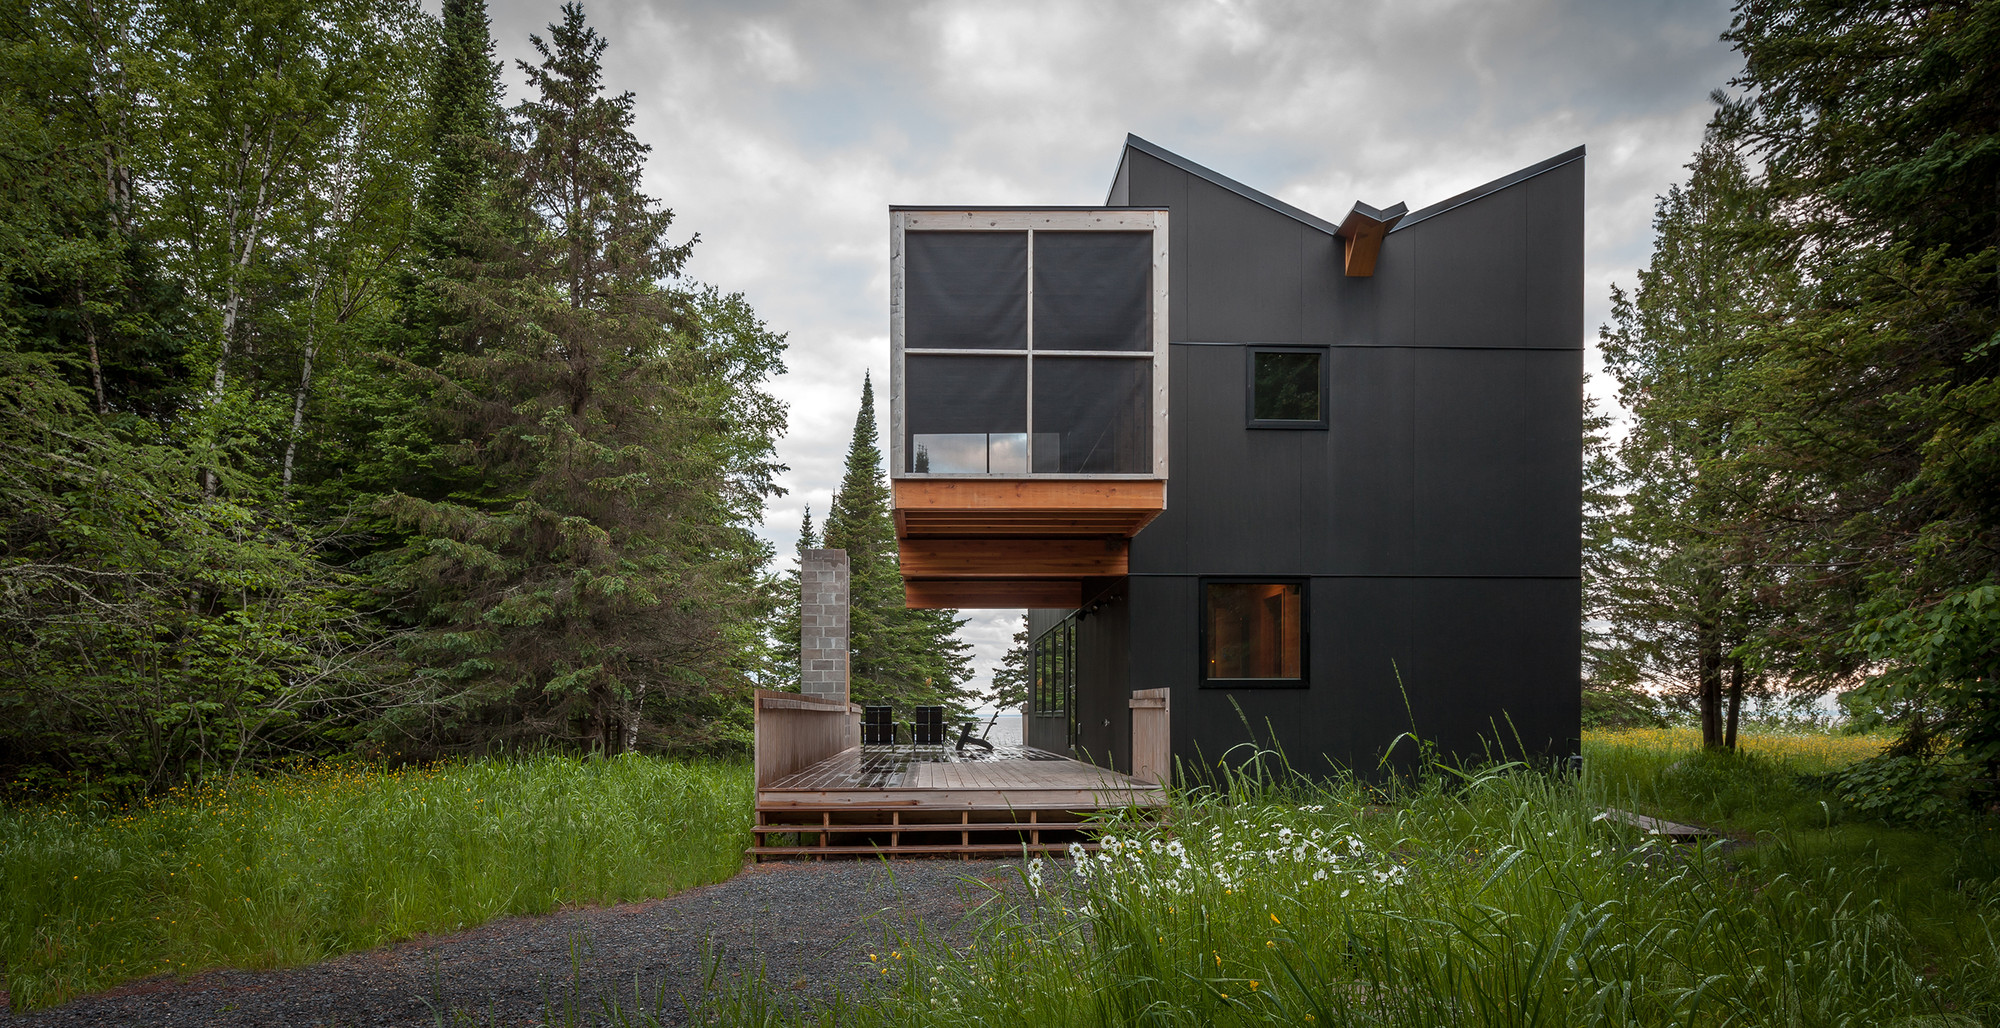 Refugio familiar / Salmela Architect, © Paul Crosby